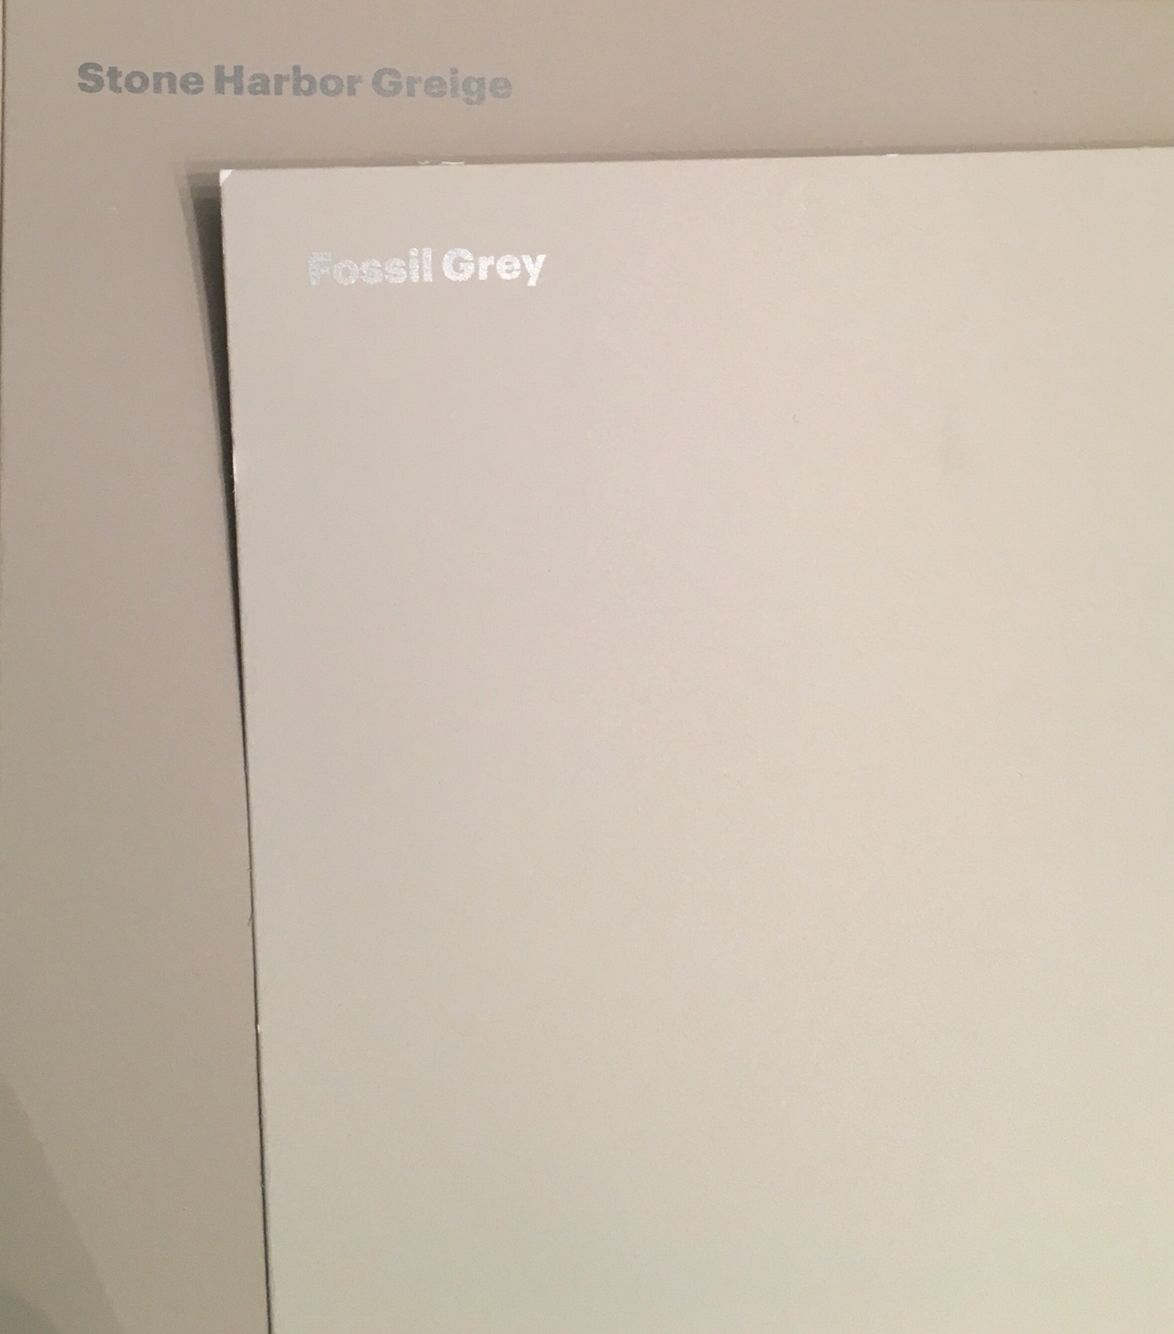 Glidden From Walmart Fossil Grey Wn36 30yy 56 060